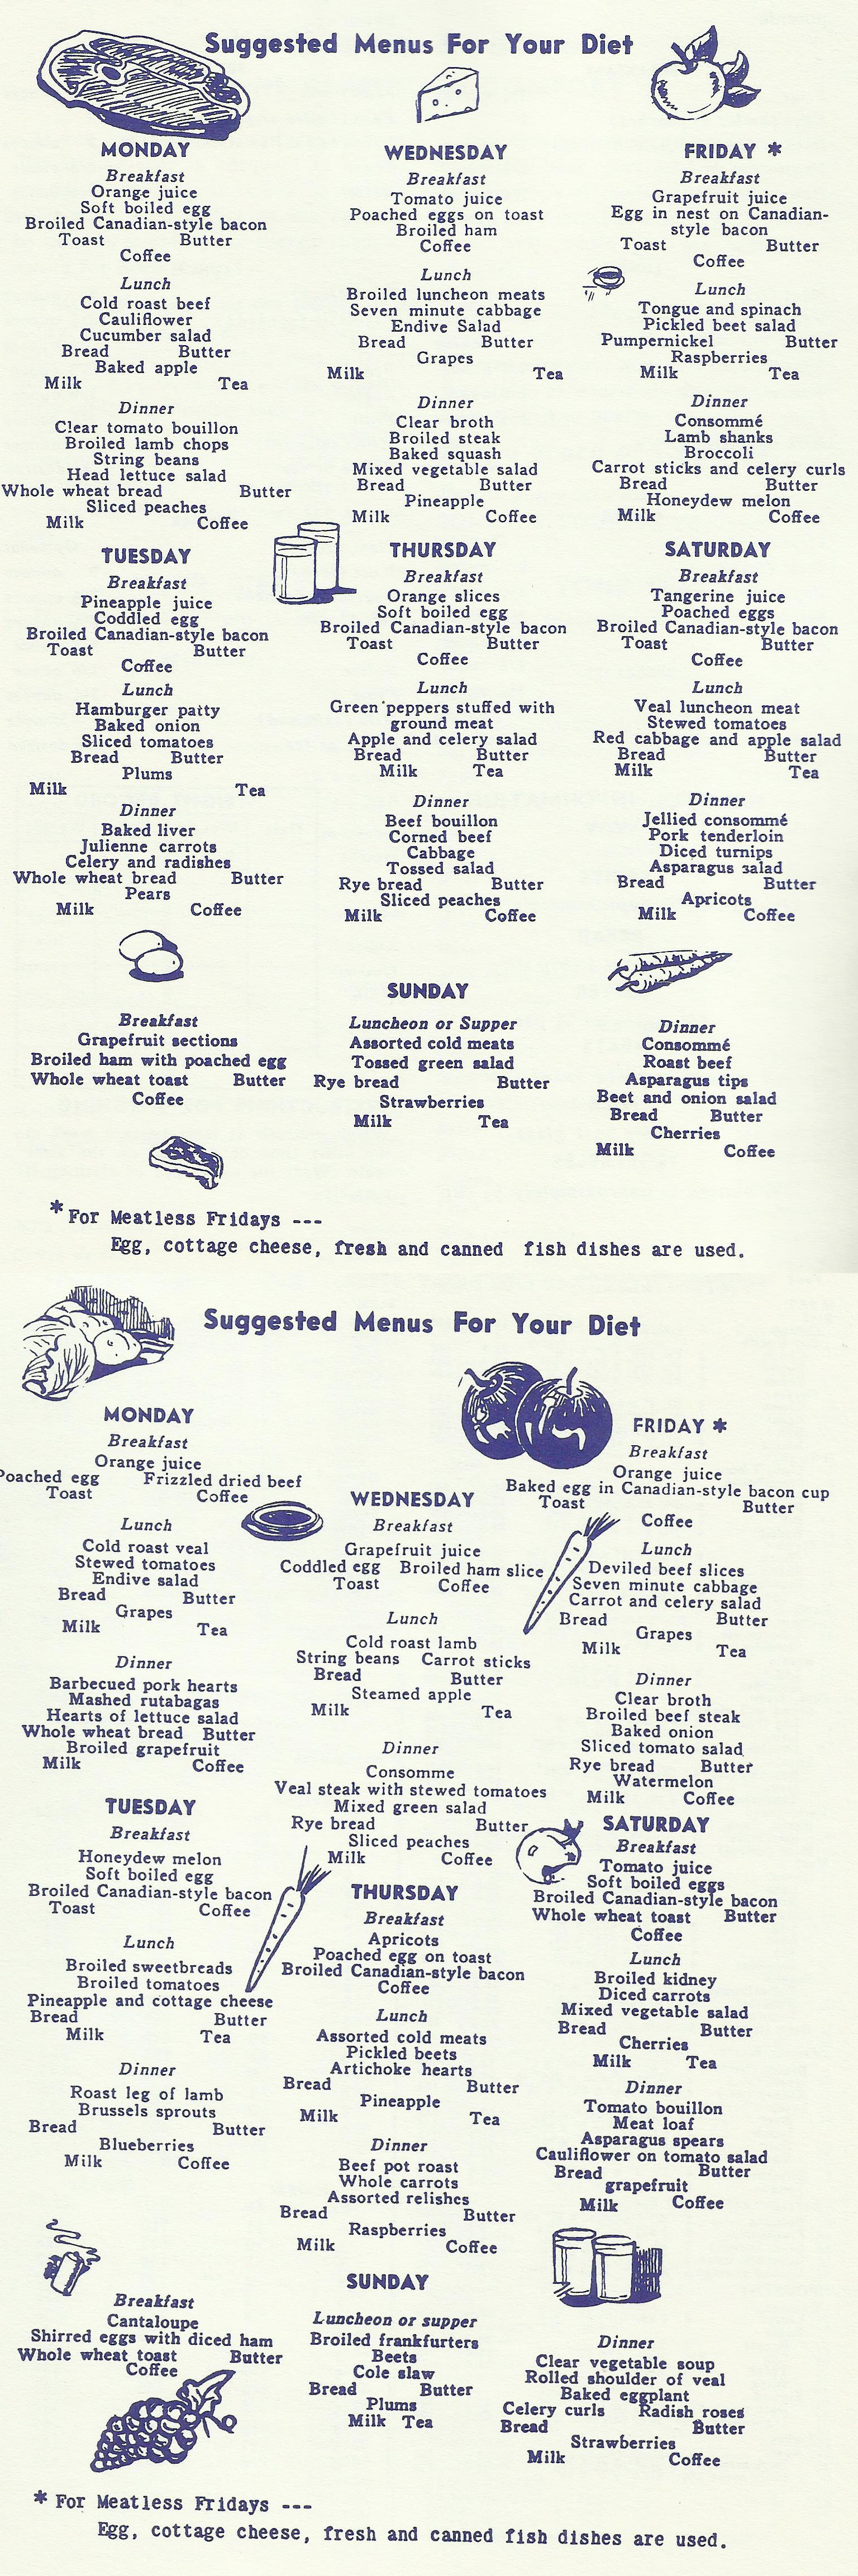 Suggested Menus For Your Diet